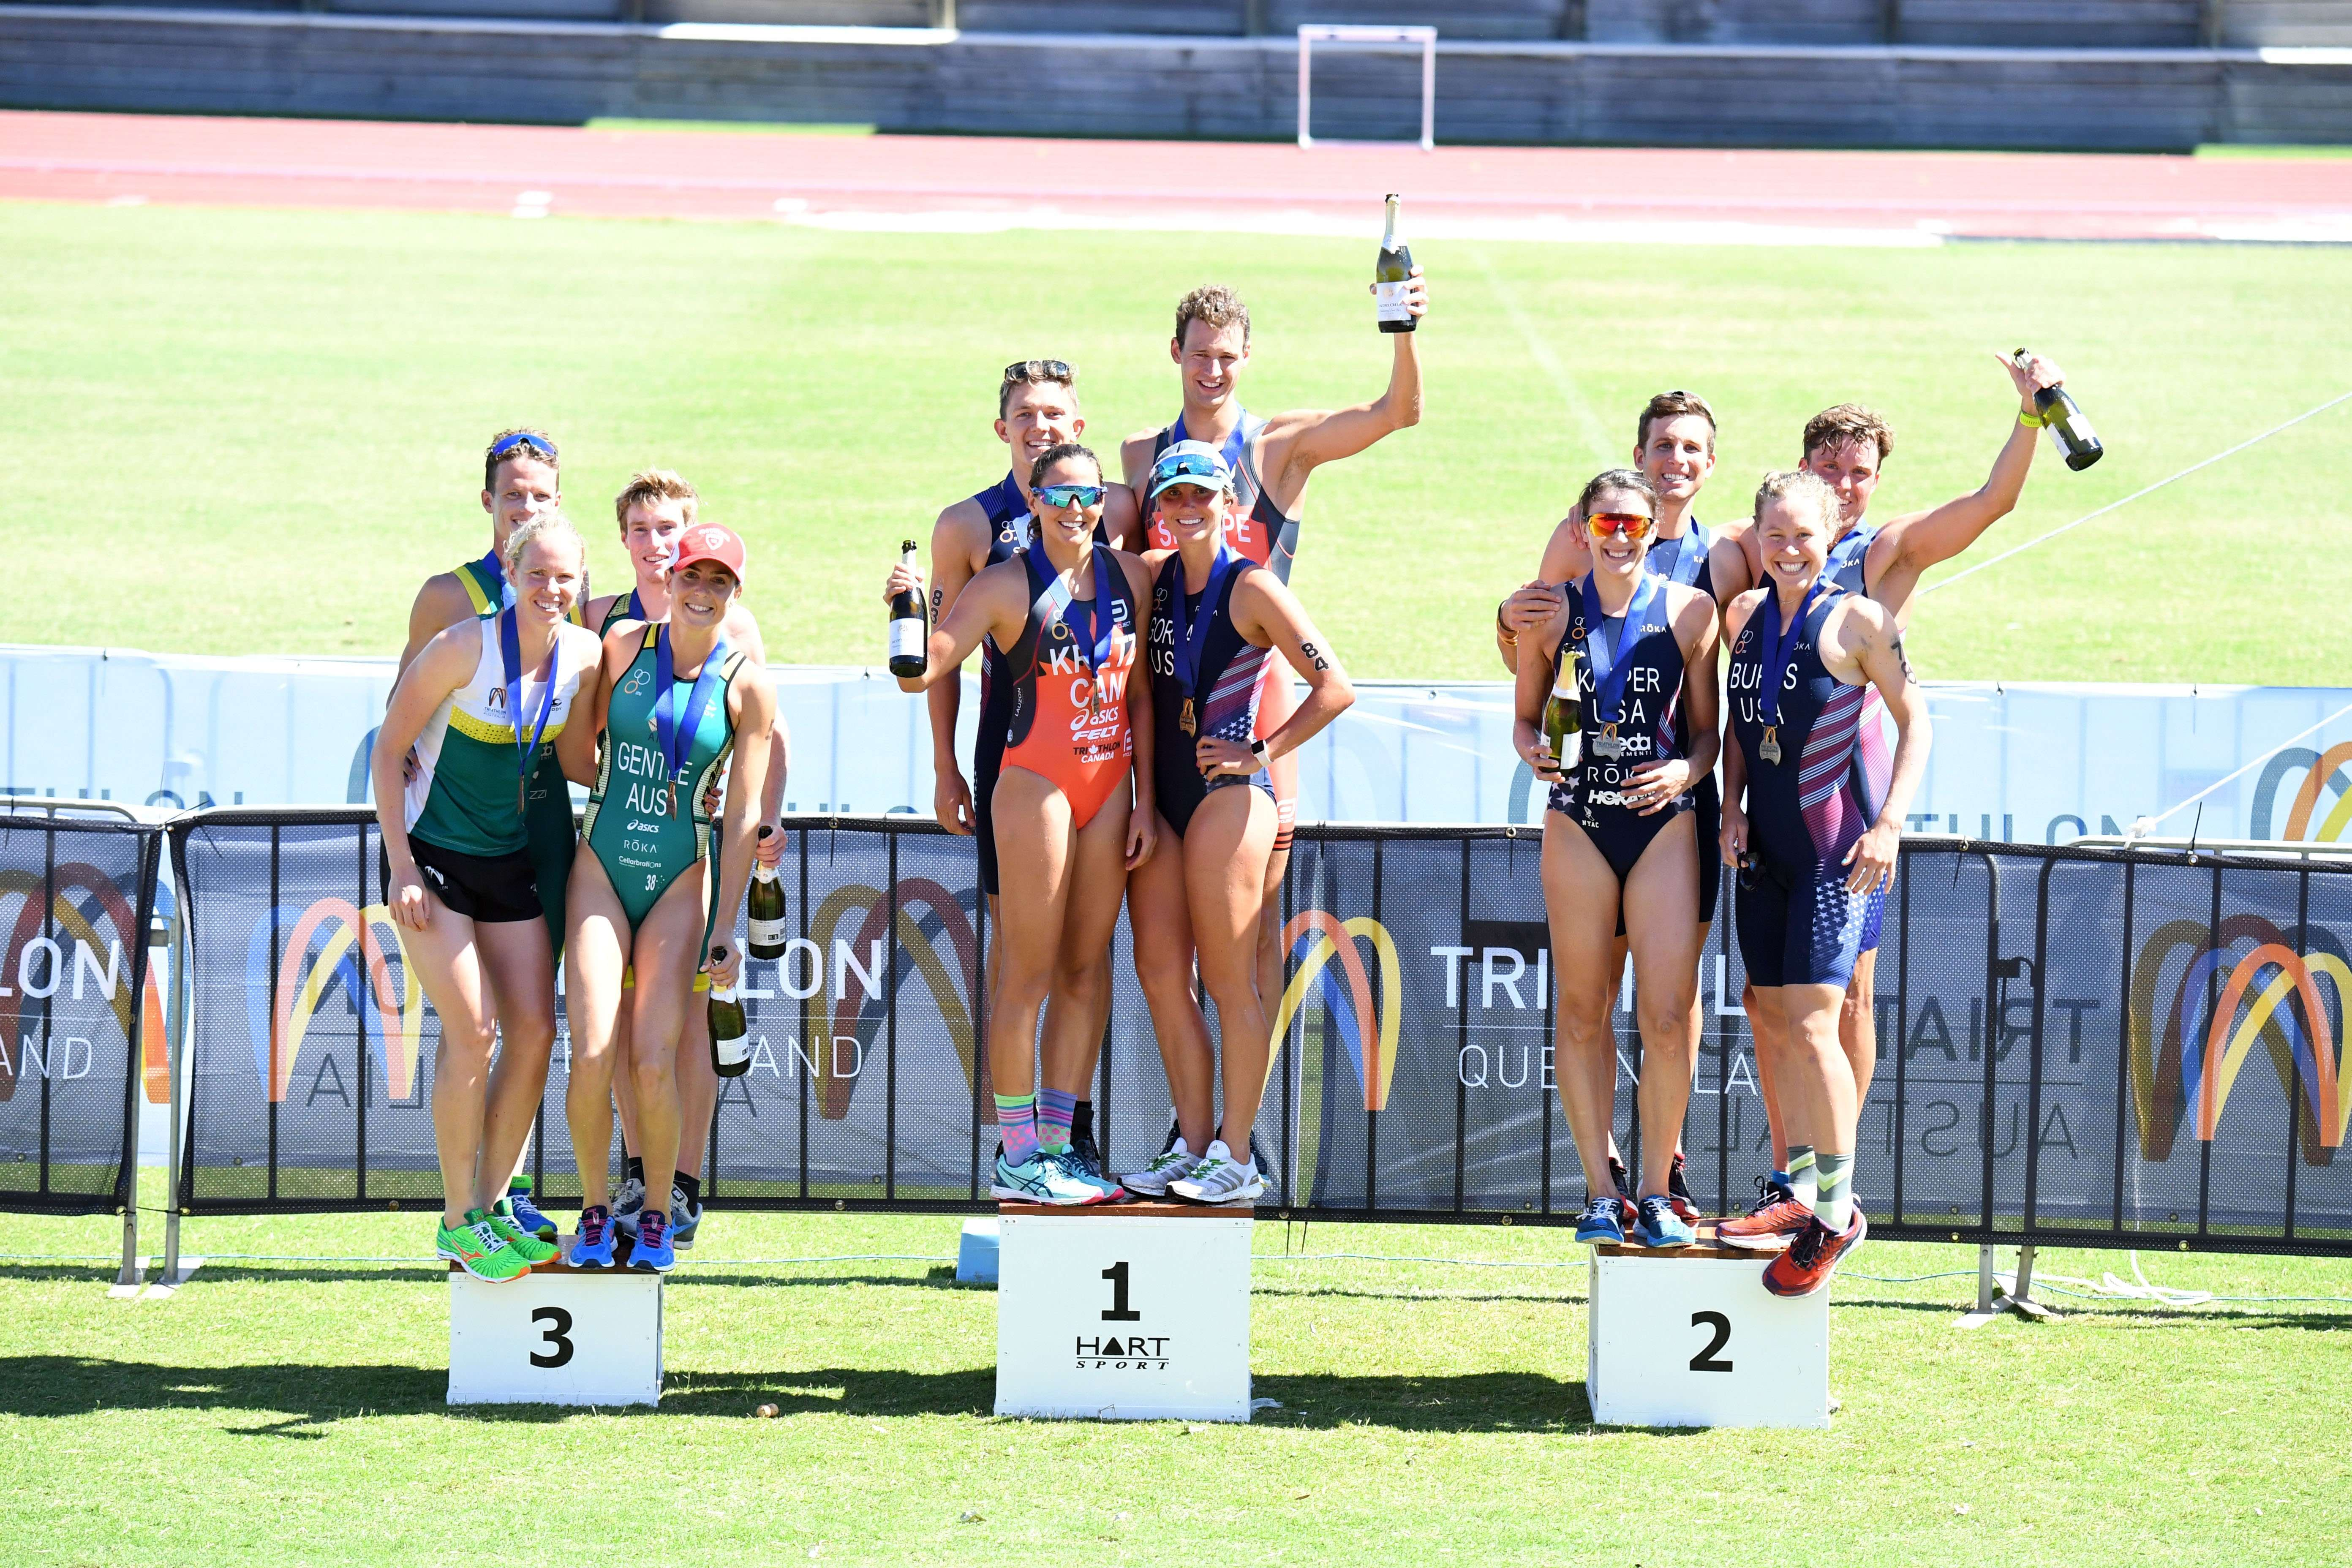 Triathlon Australia Mixed Relay Invitational 2018